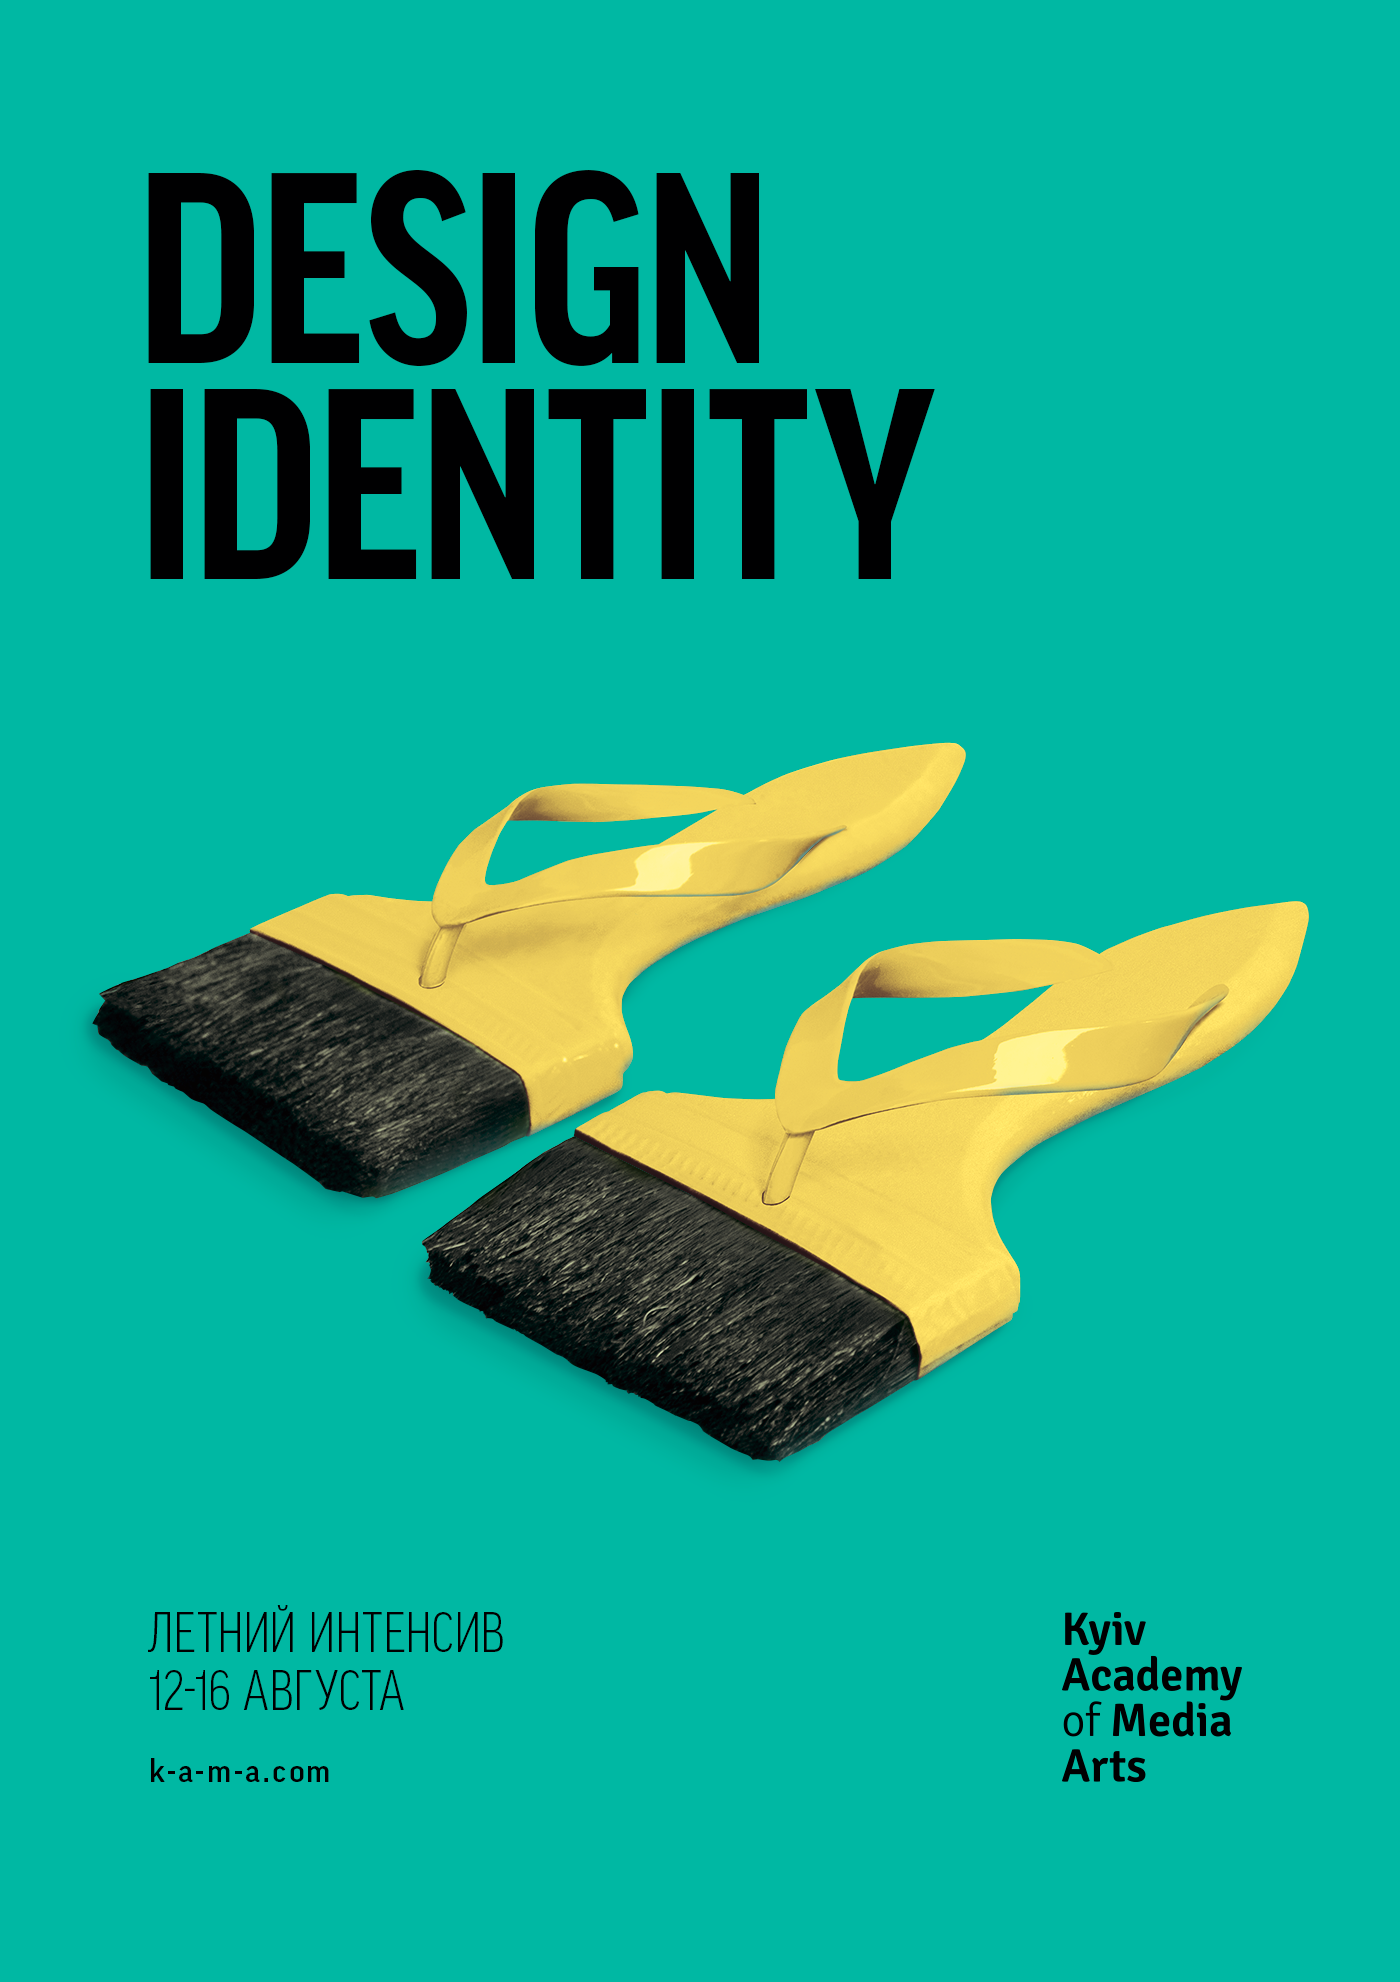 DESIGN-IDENTITY-WEB (1).png